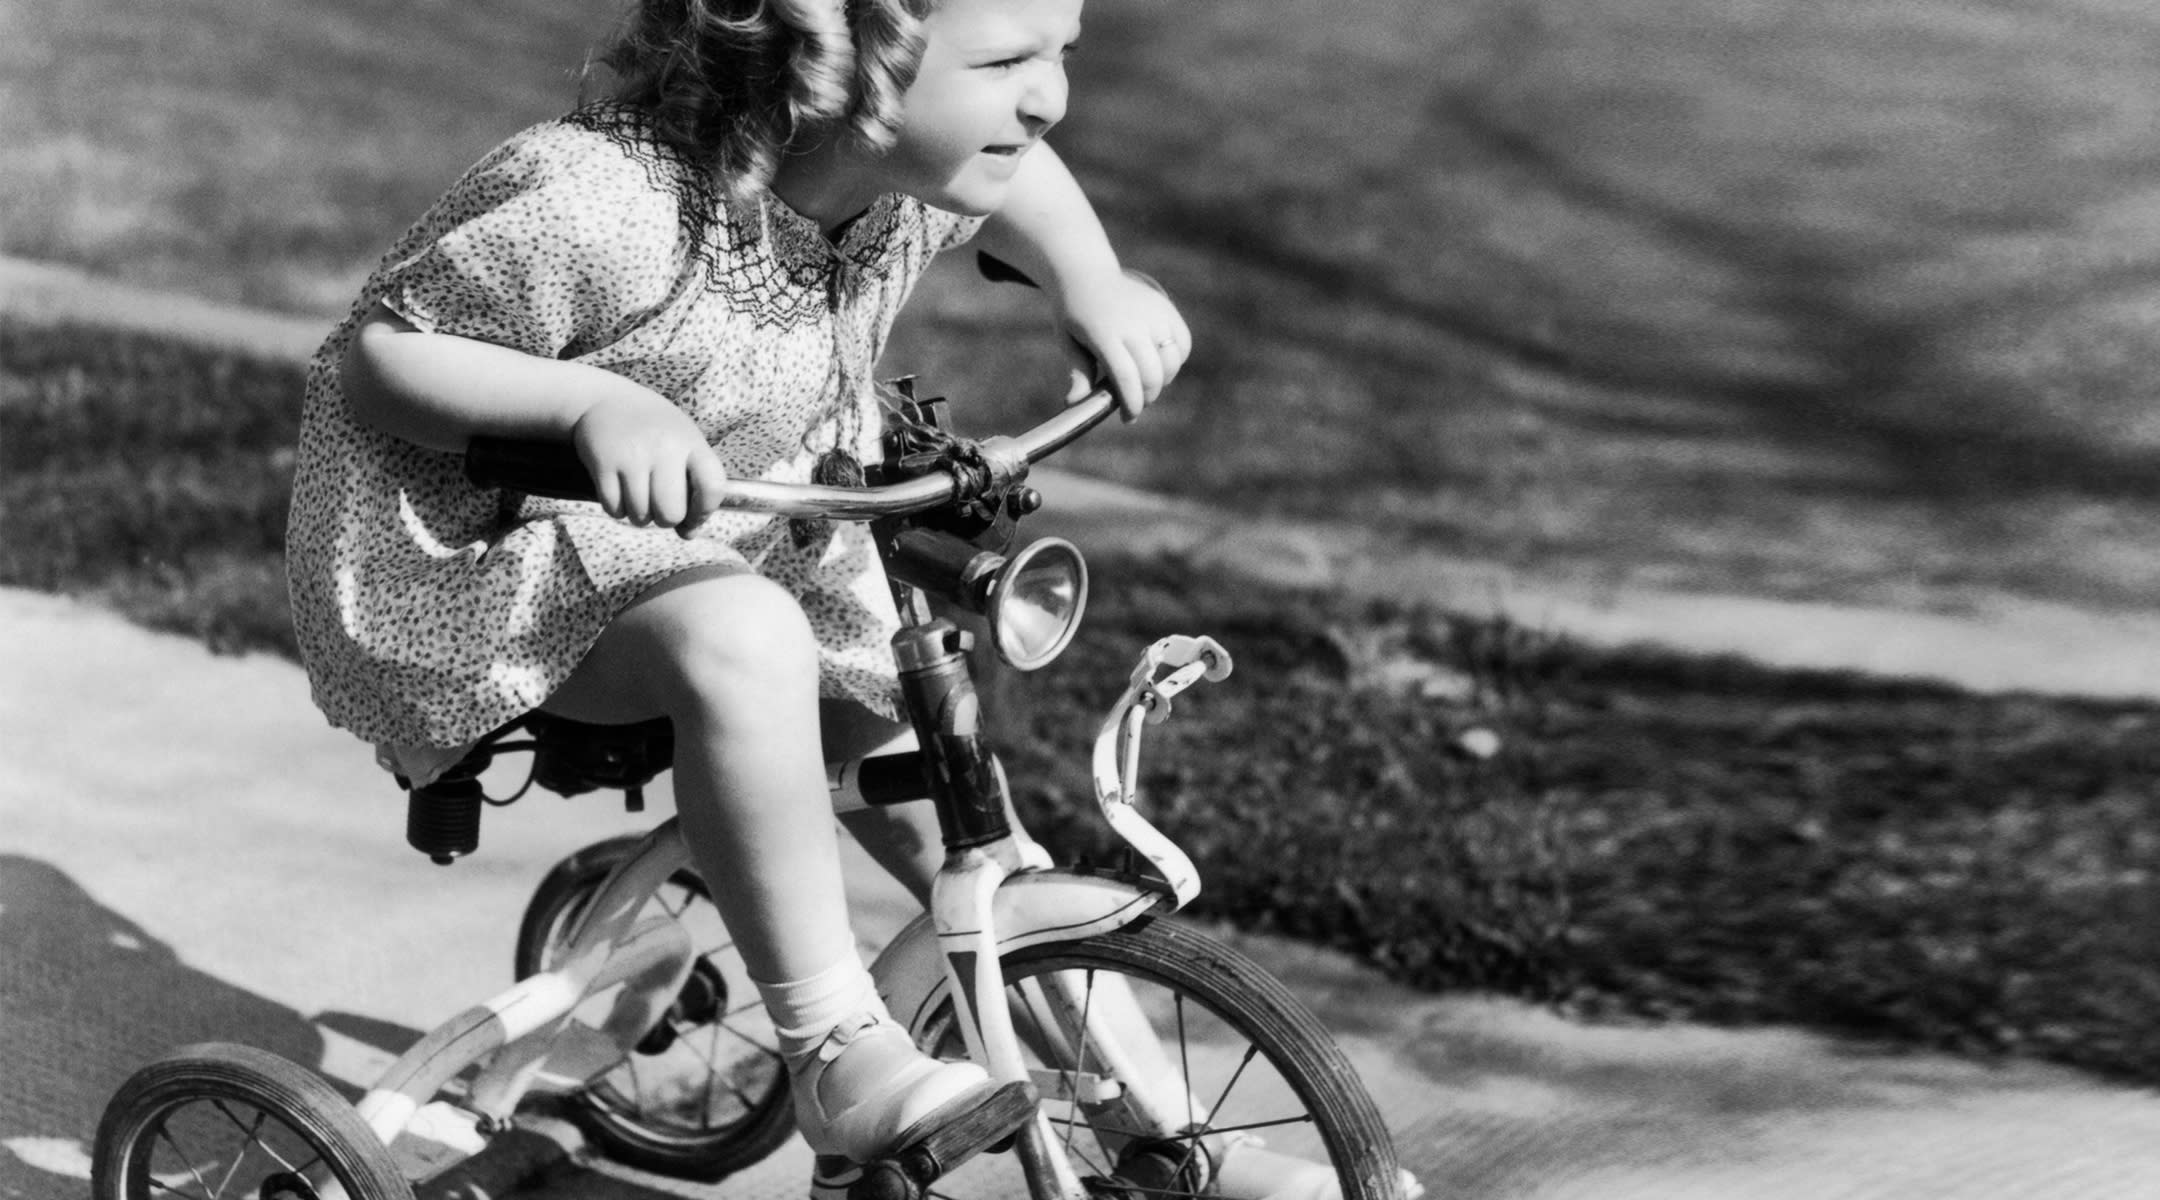 little girl with grit riding her bike